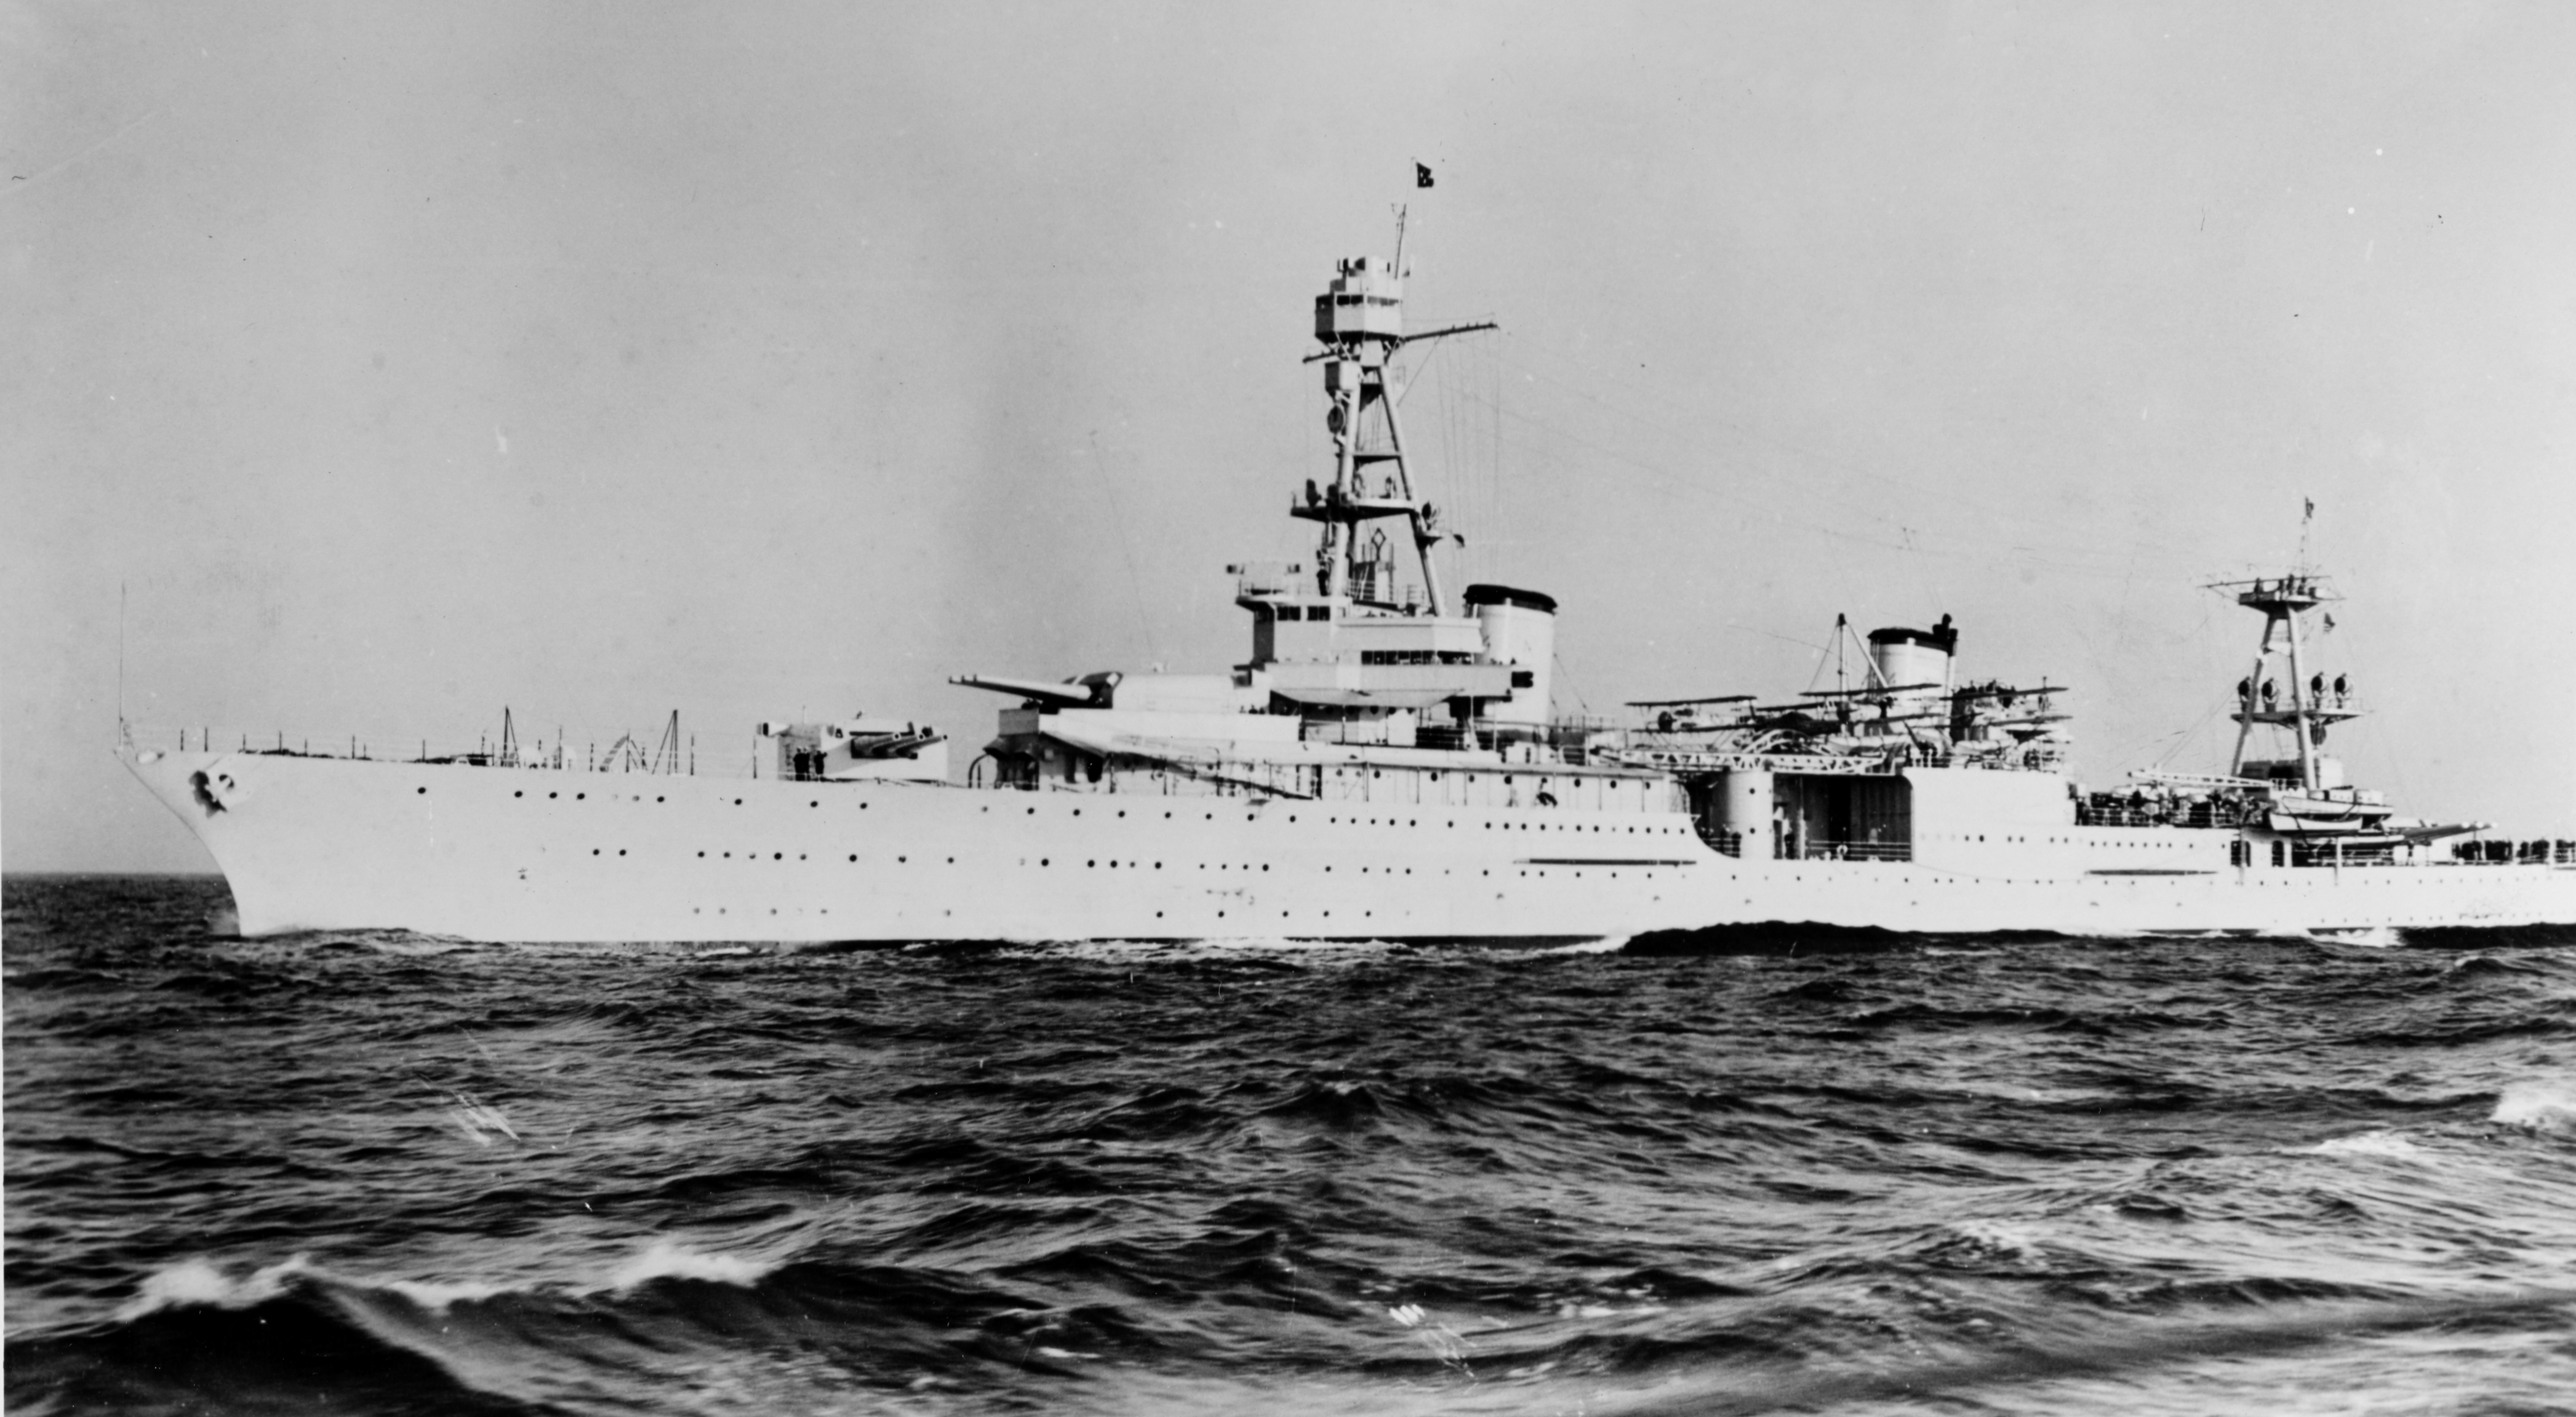 The USS Houston in the 1930s. (Photo from Wikimedia Commons)